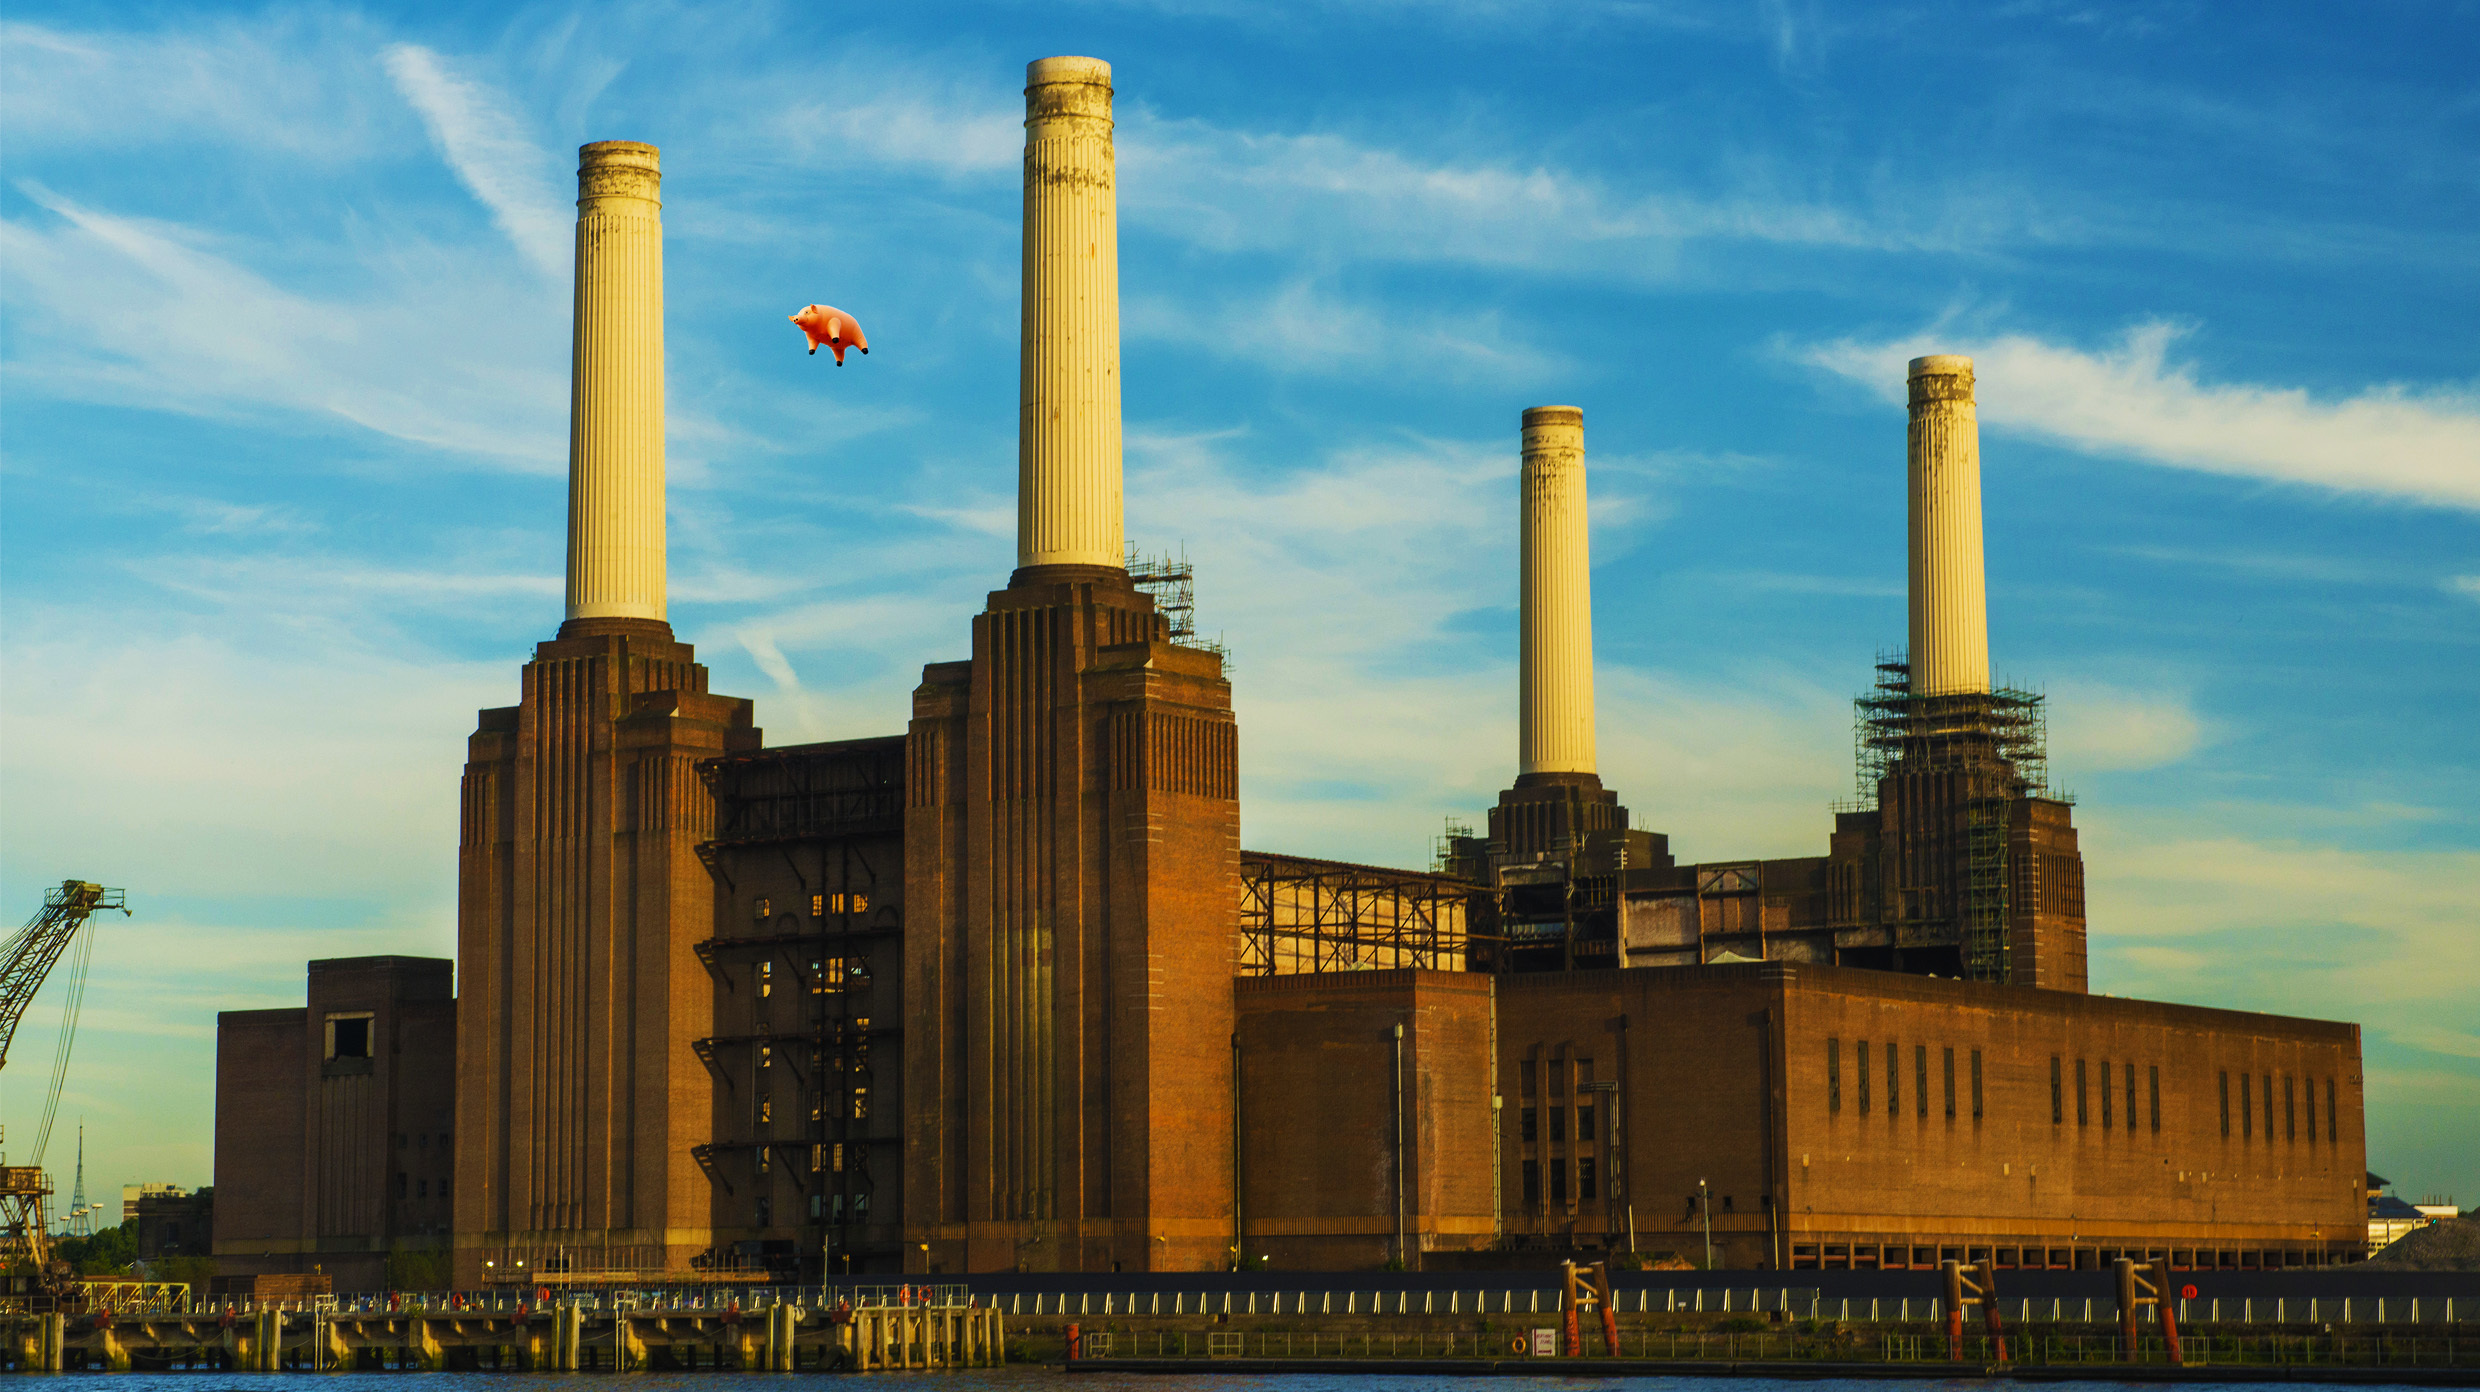 Wallpaper Pink Floyd Animals Musica Posts Y Noticias